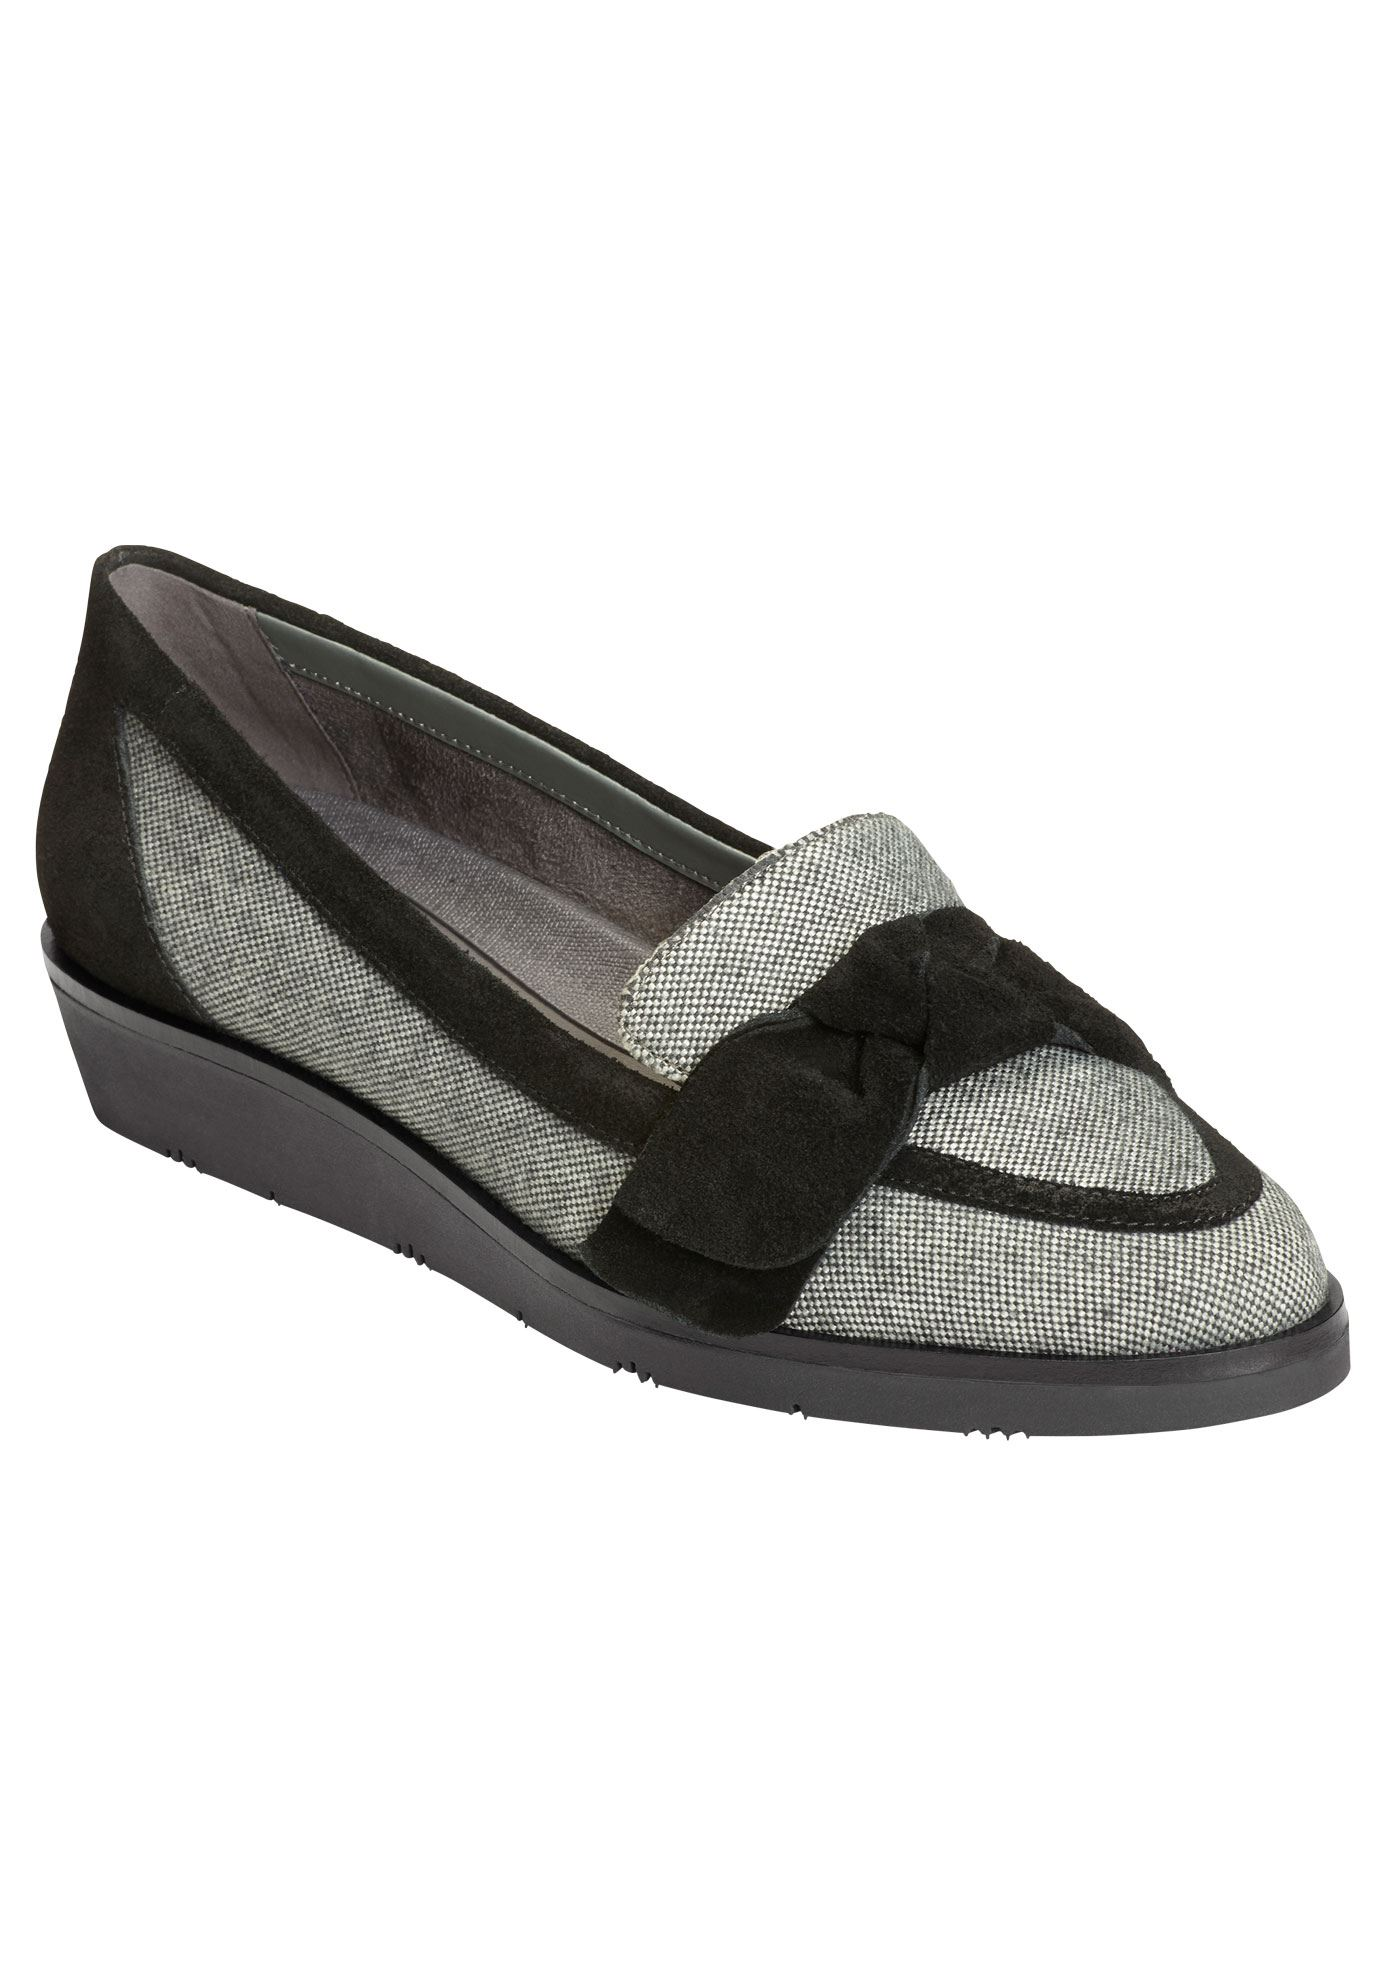 Sidewalk Slip-Ons by Aerosoles®,